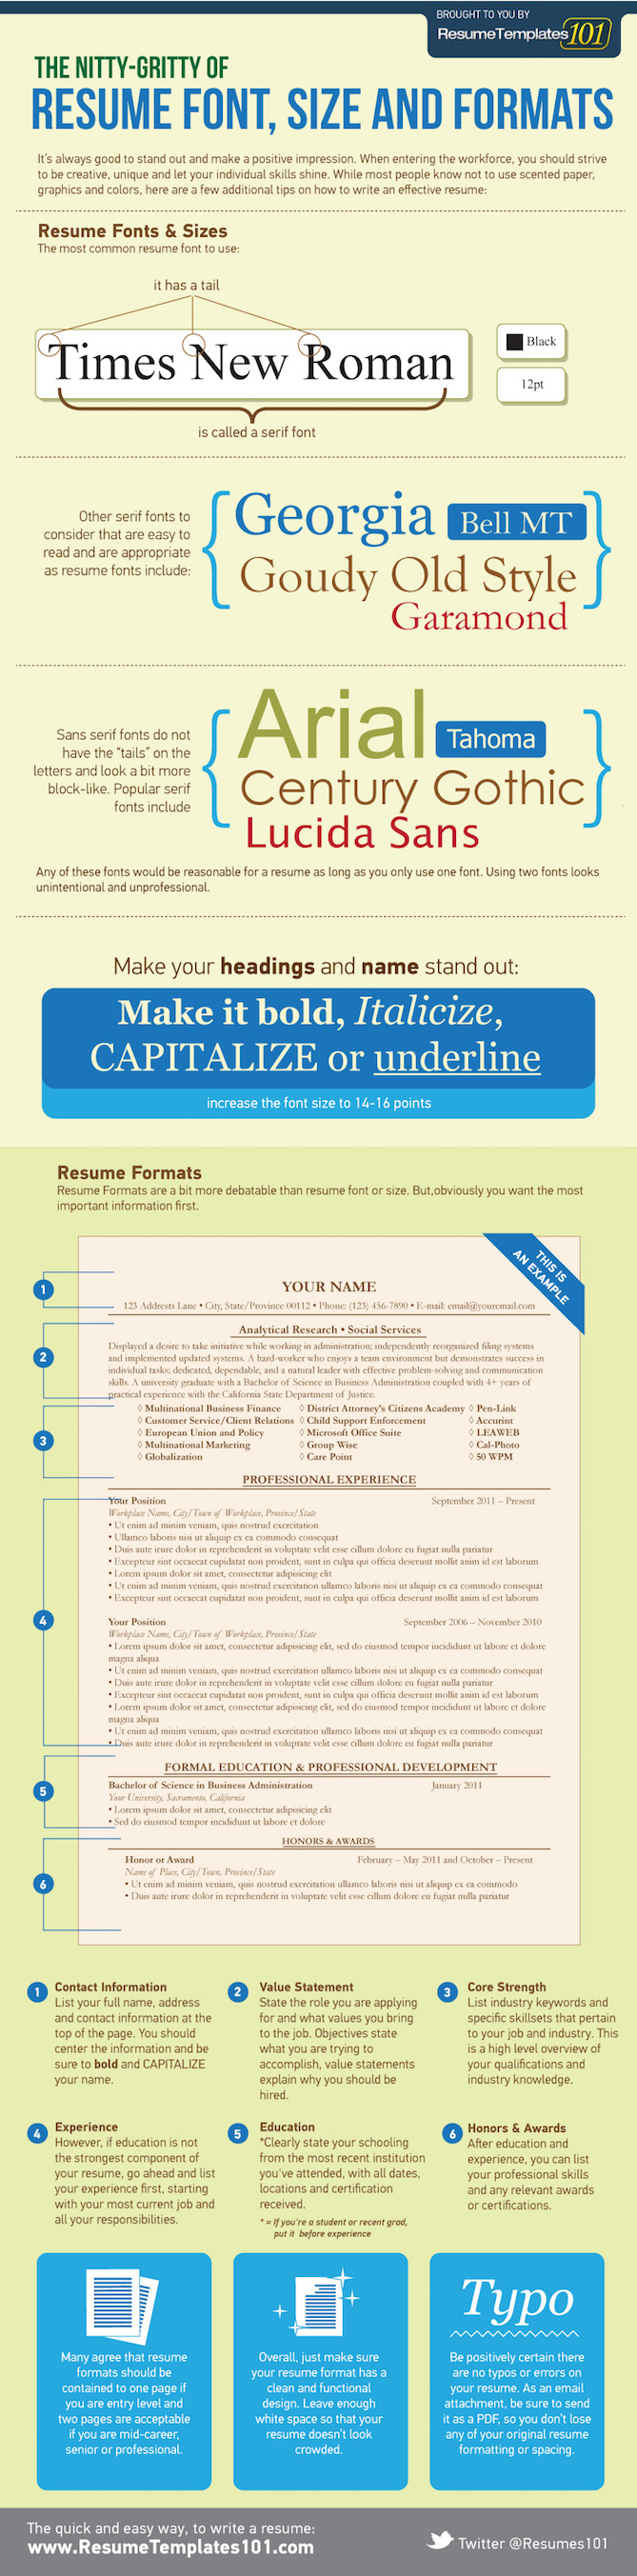 Infographic on how to format a resume using the best font type, font size, headings, and layout.